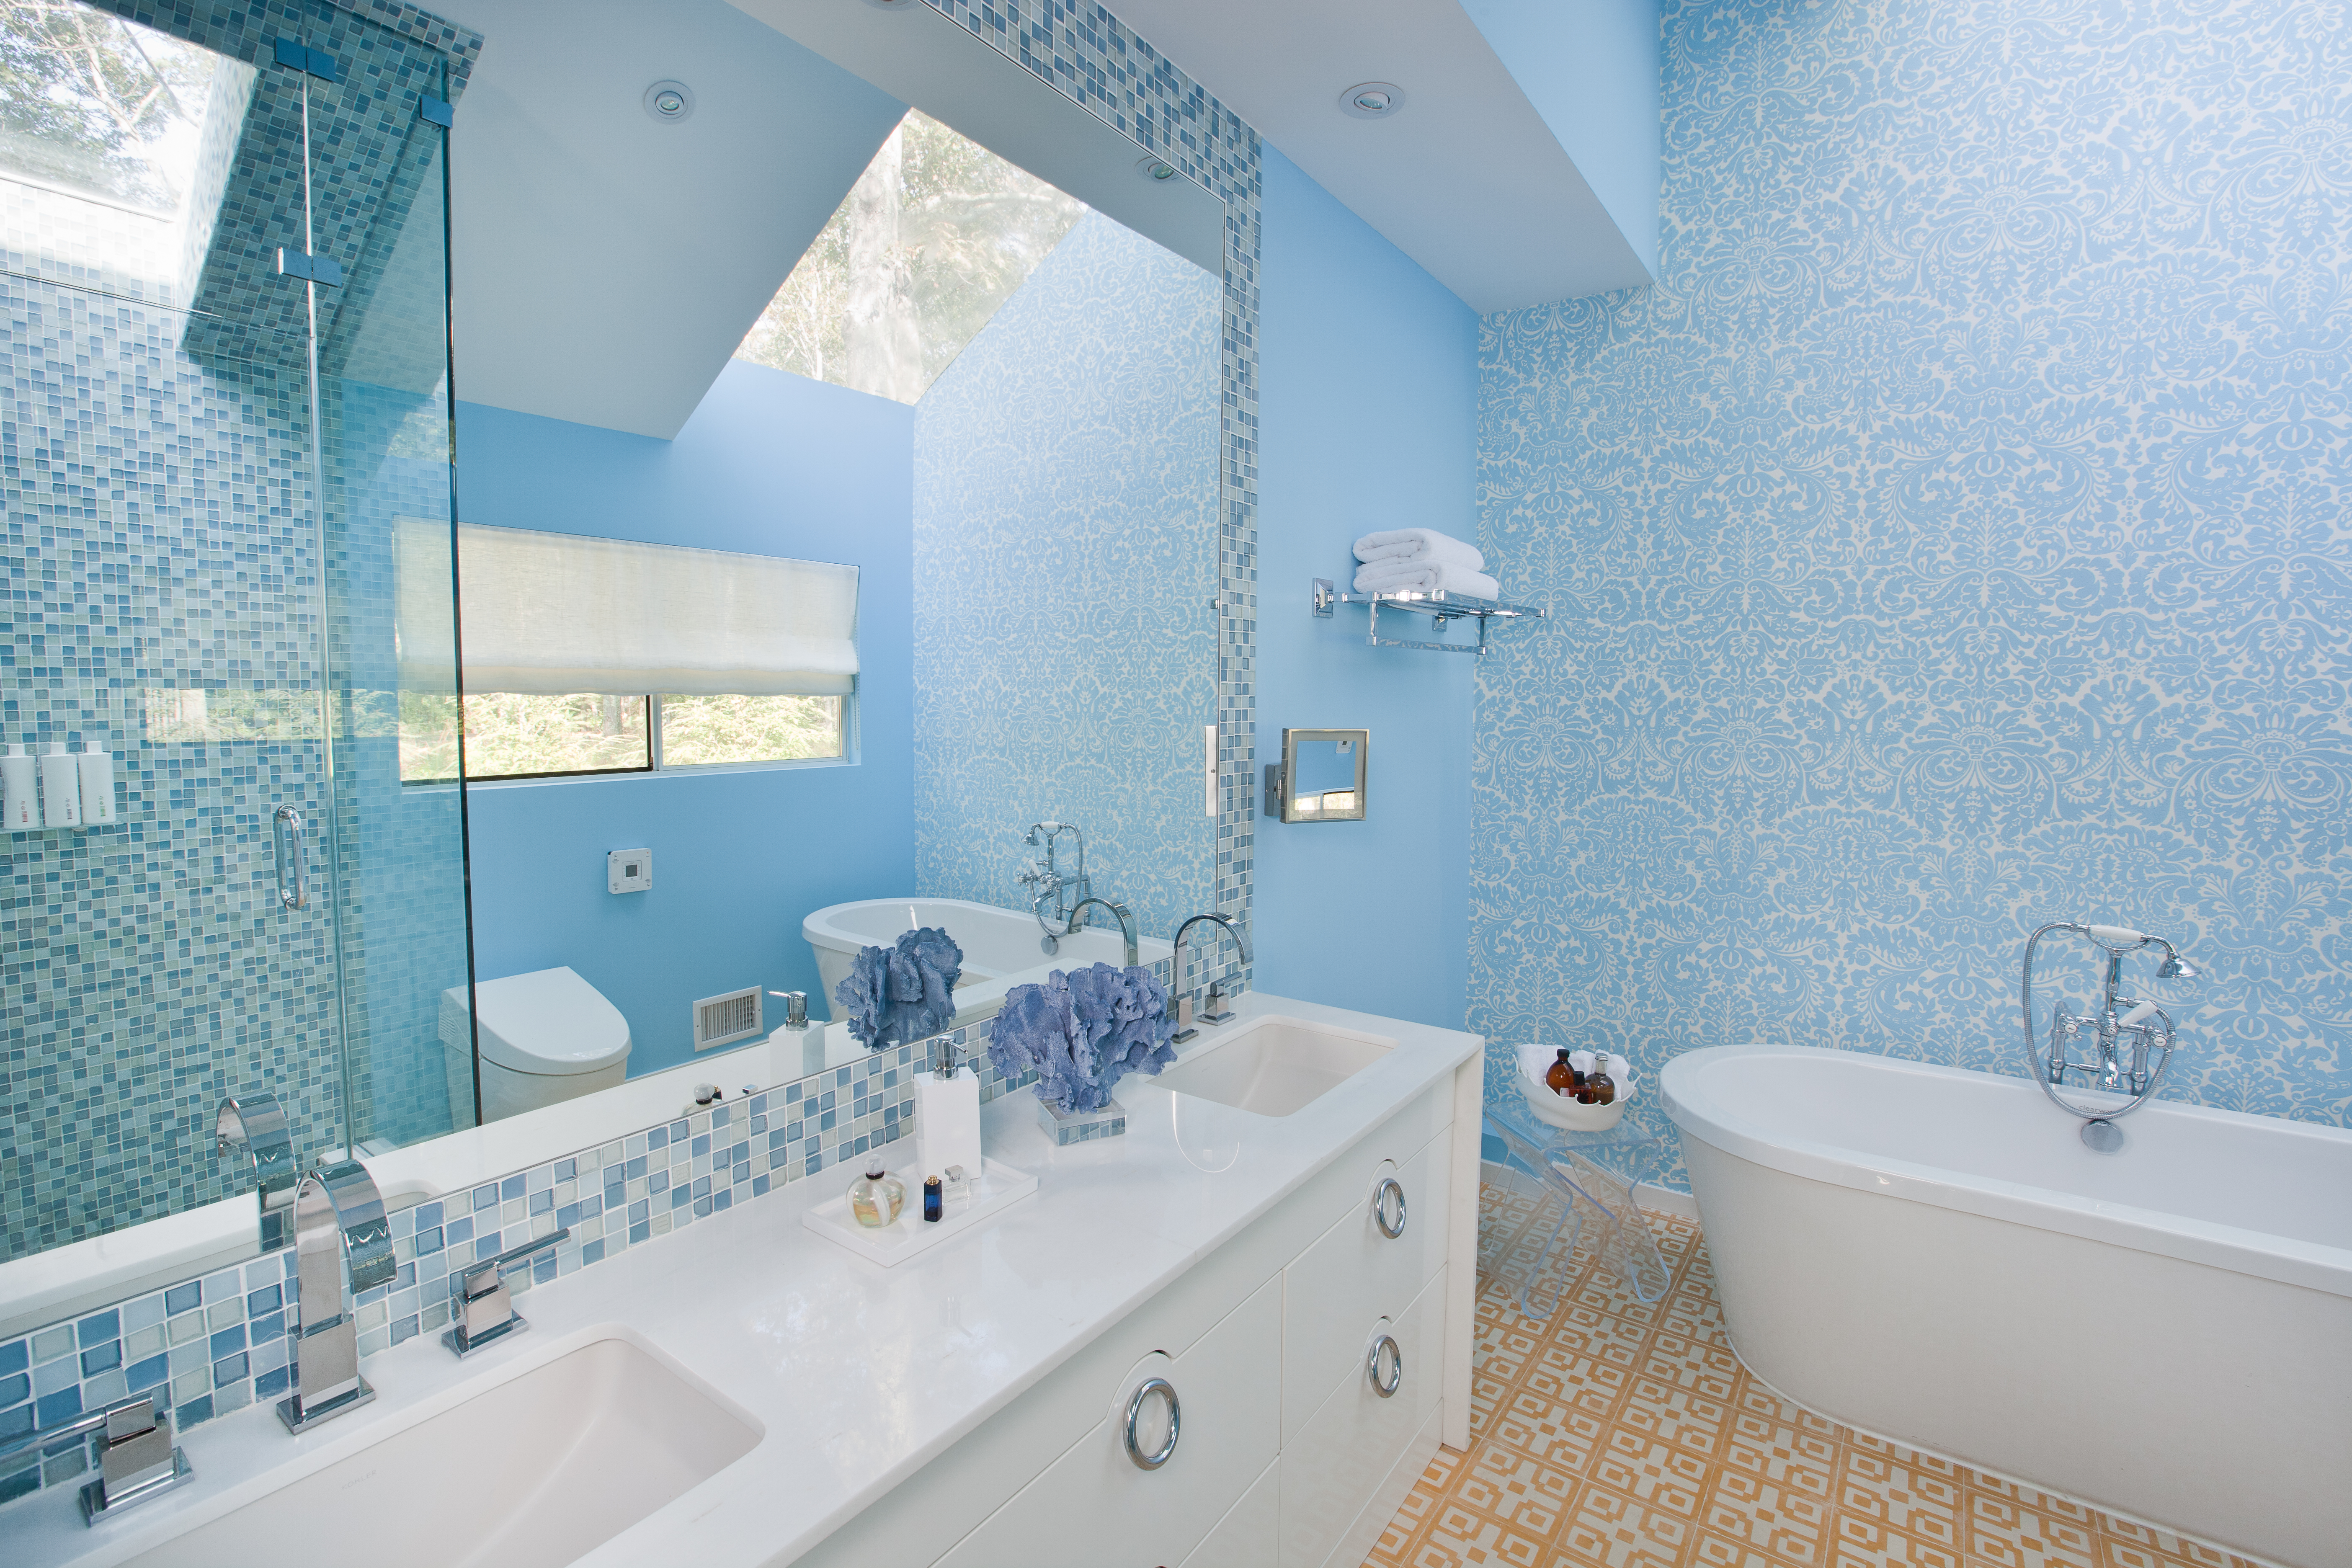 The perfect place for a glamorous soak in the tub!